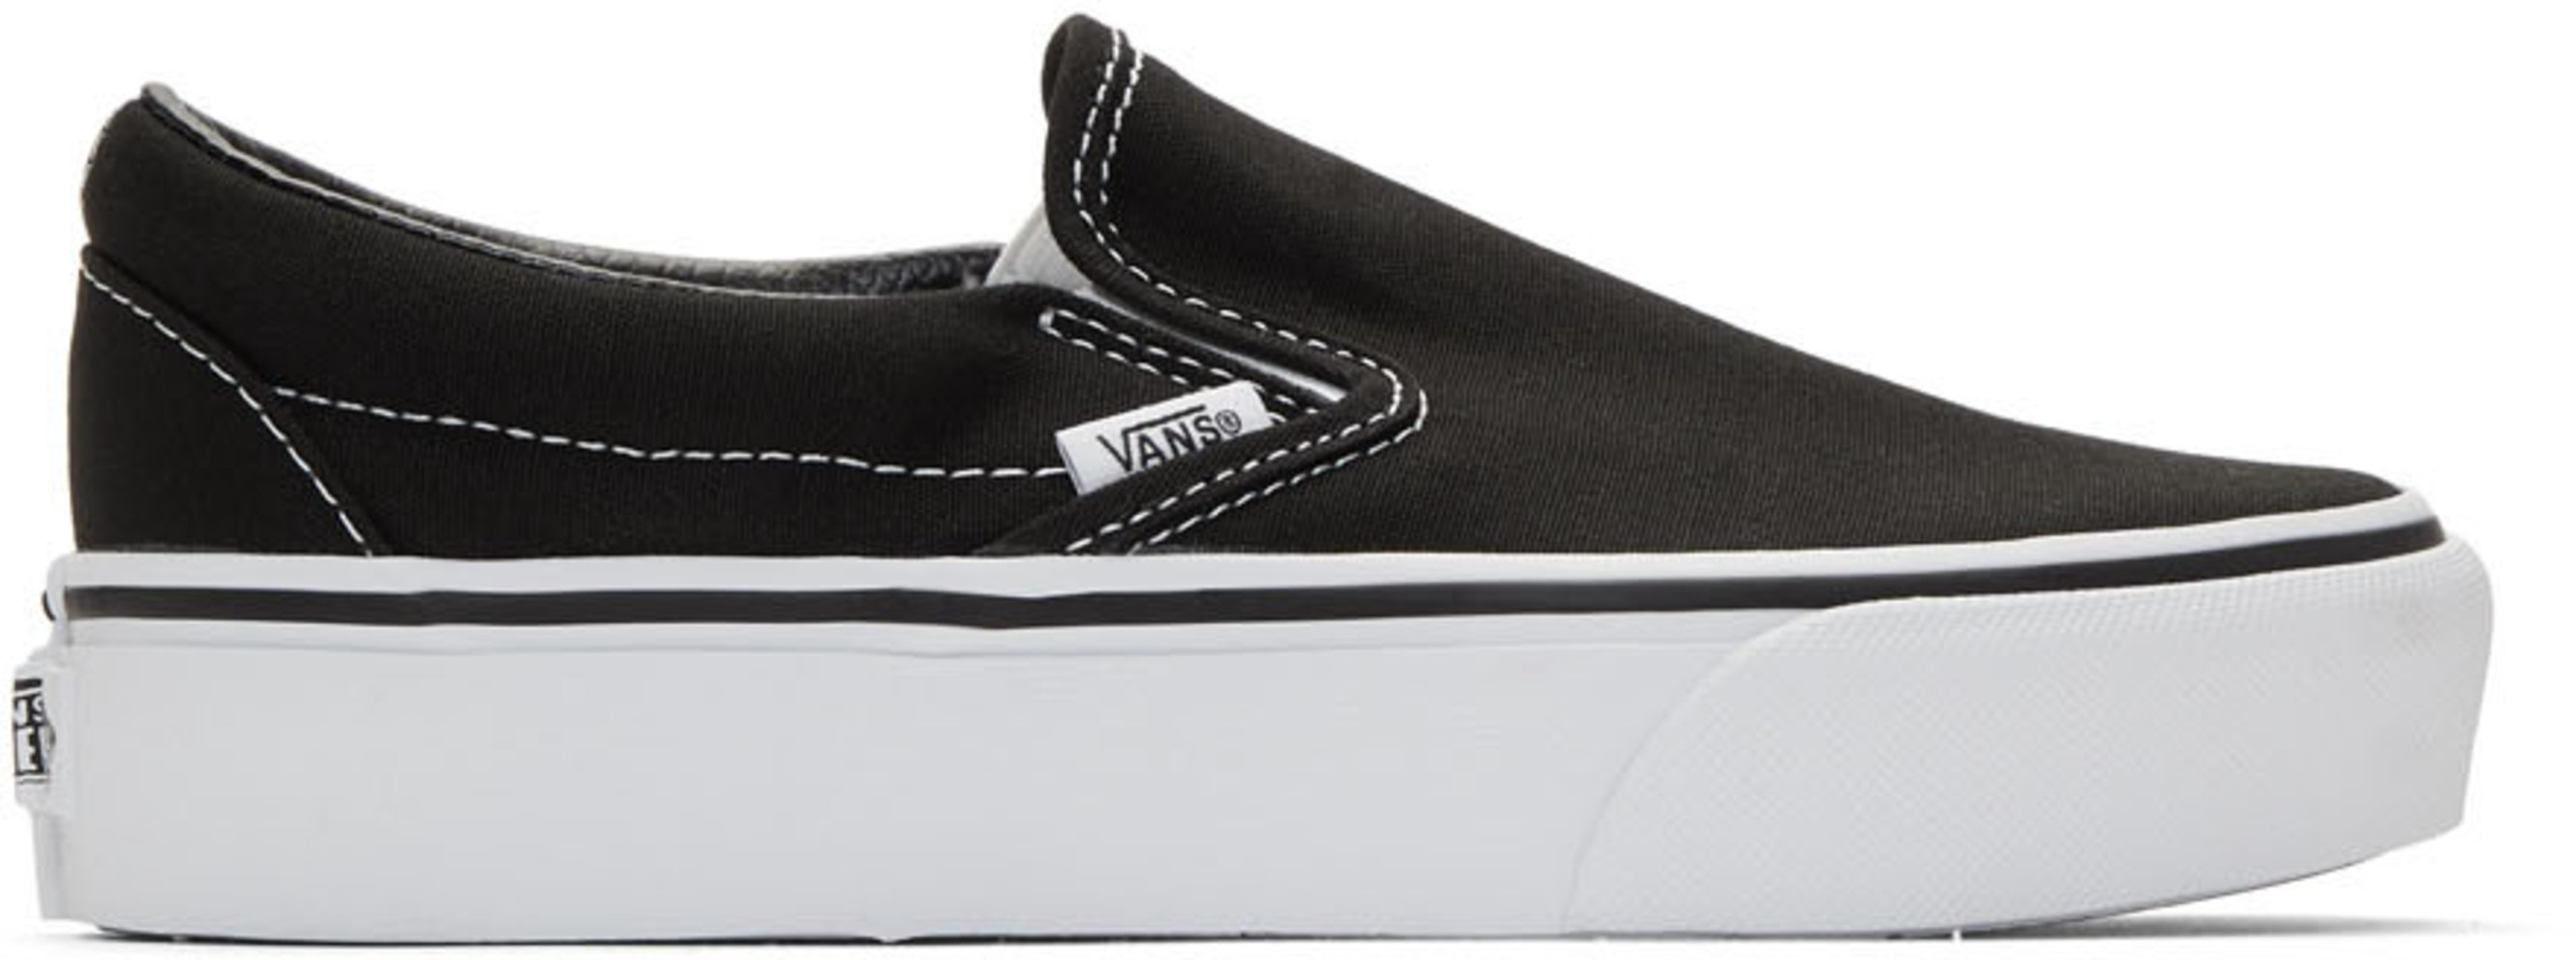 a0e0be8b9a Vans for Women SS19 Collection